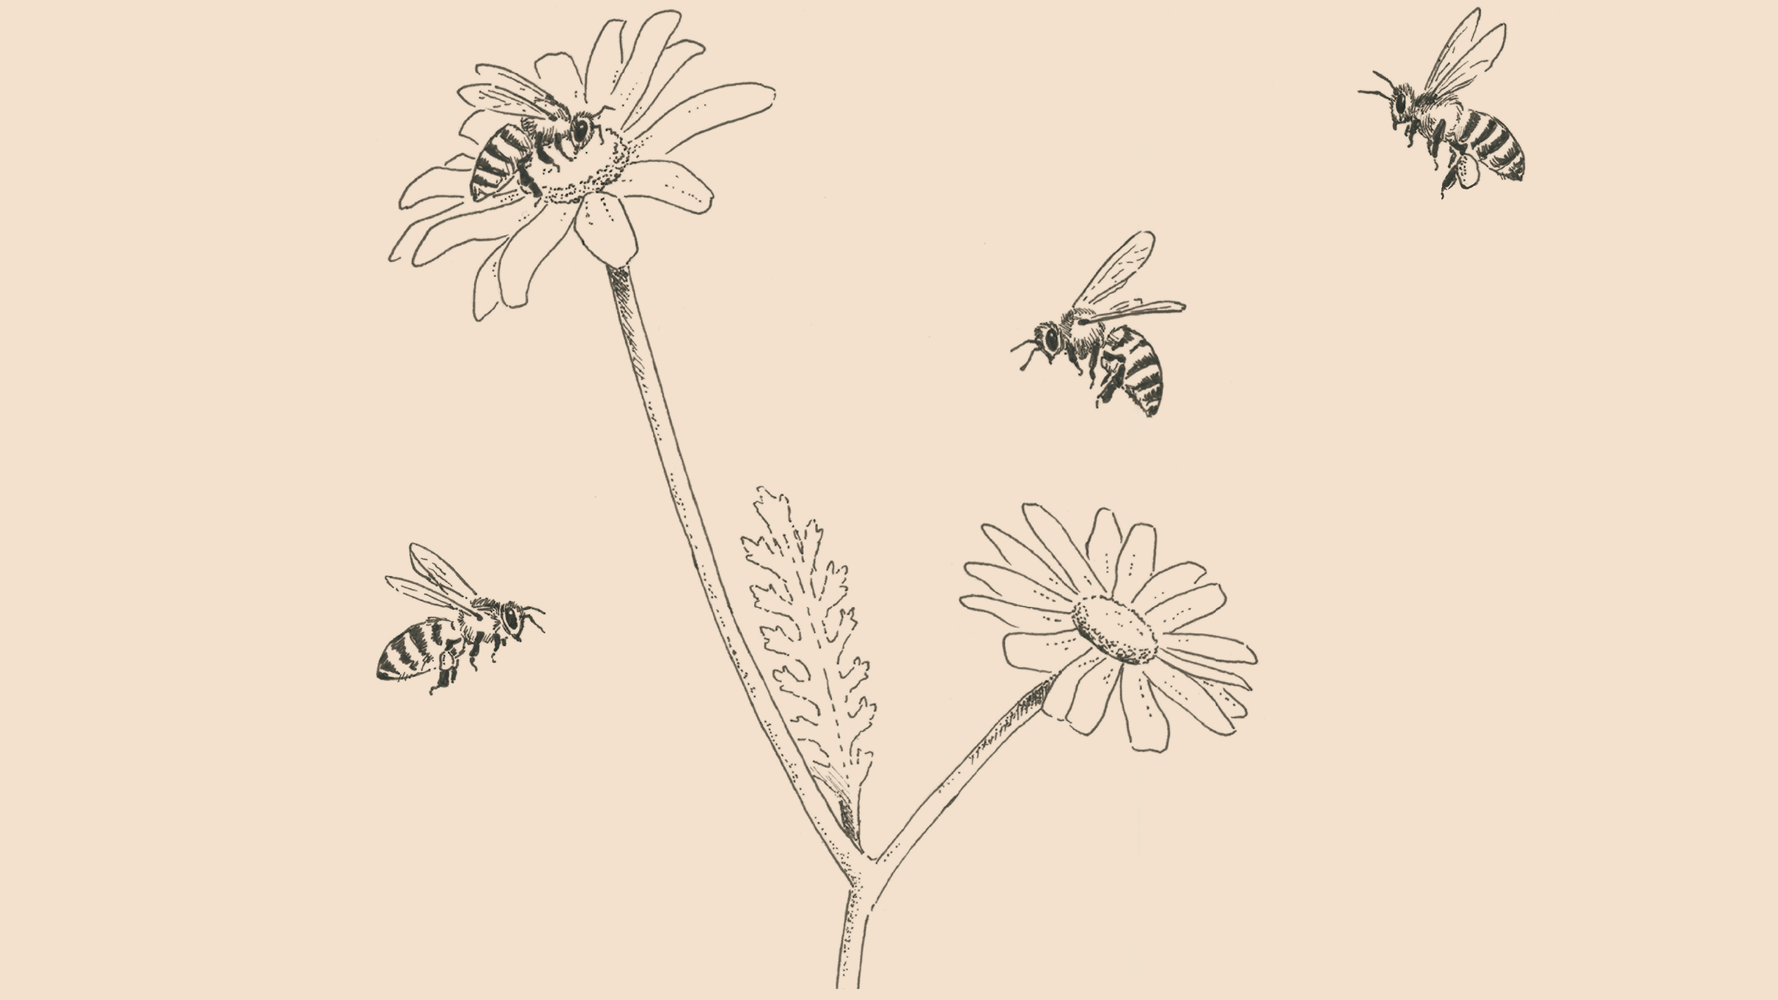 Teide Daisy and Canary Black Bee illustration | Giraffa